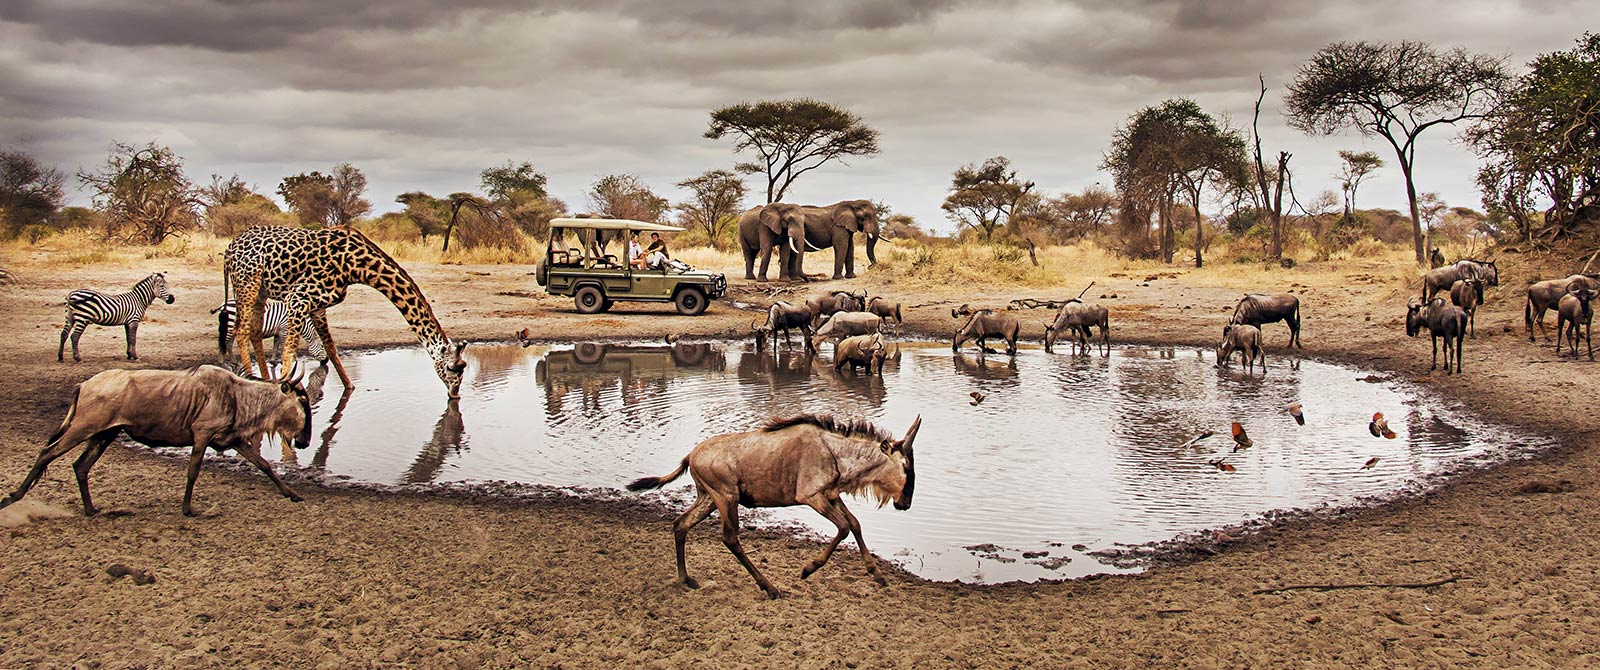 Active Waterhole on Game Drive - Little Chem Chem - Tanzania Highlights: Tarangire, Ngorongoro, and Serengeti Safari